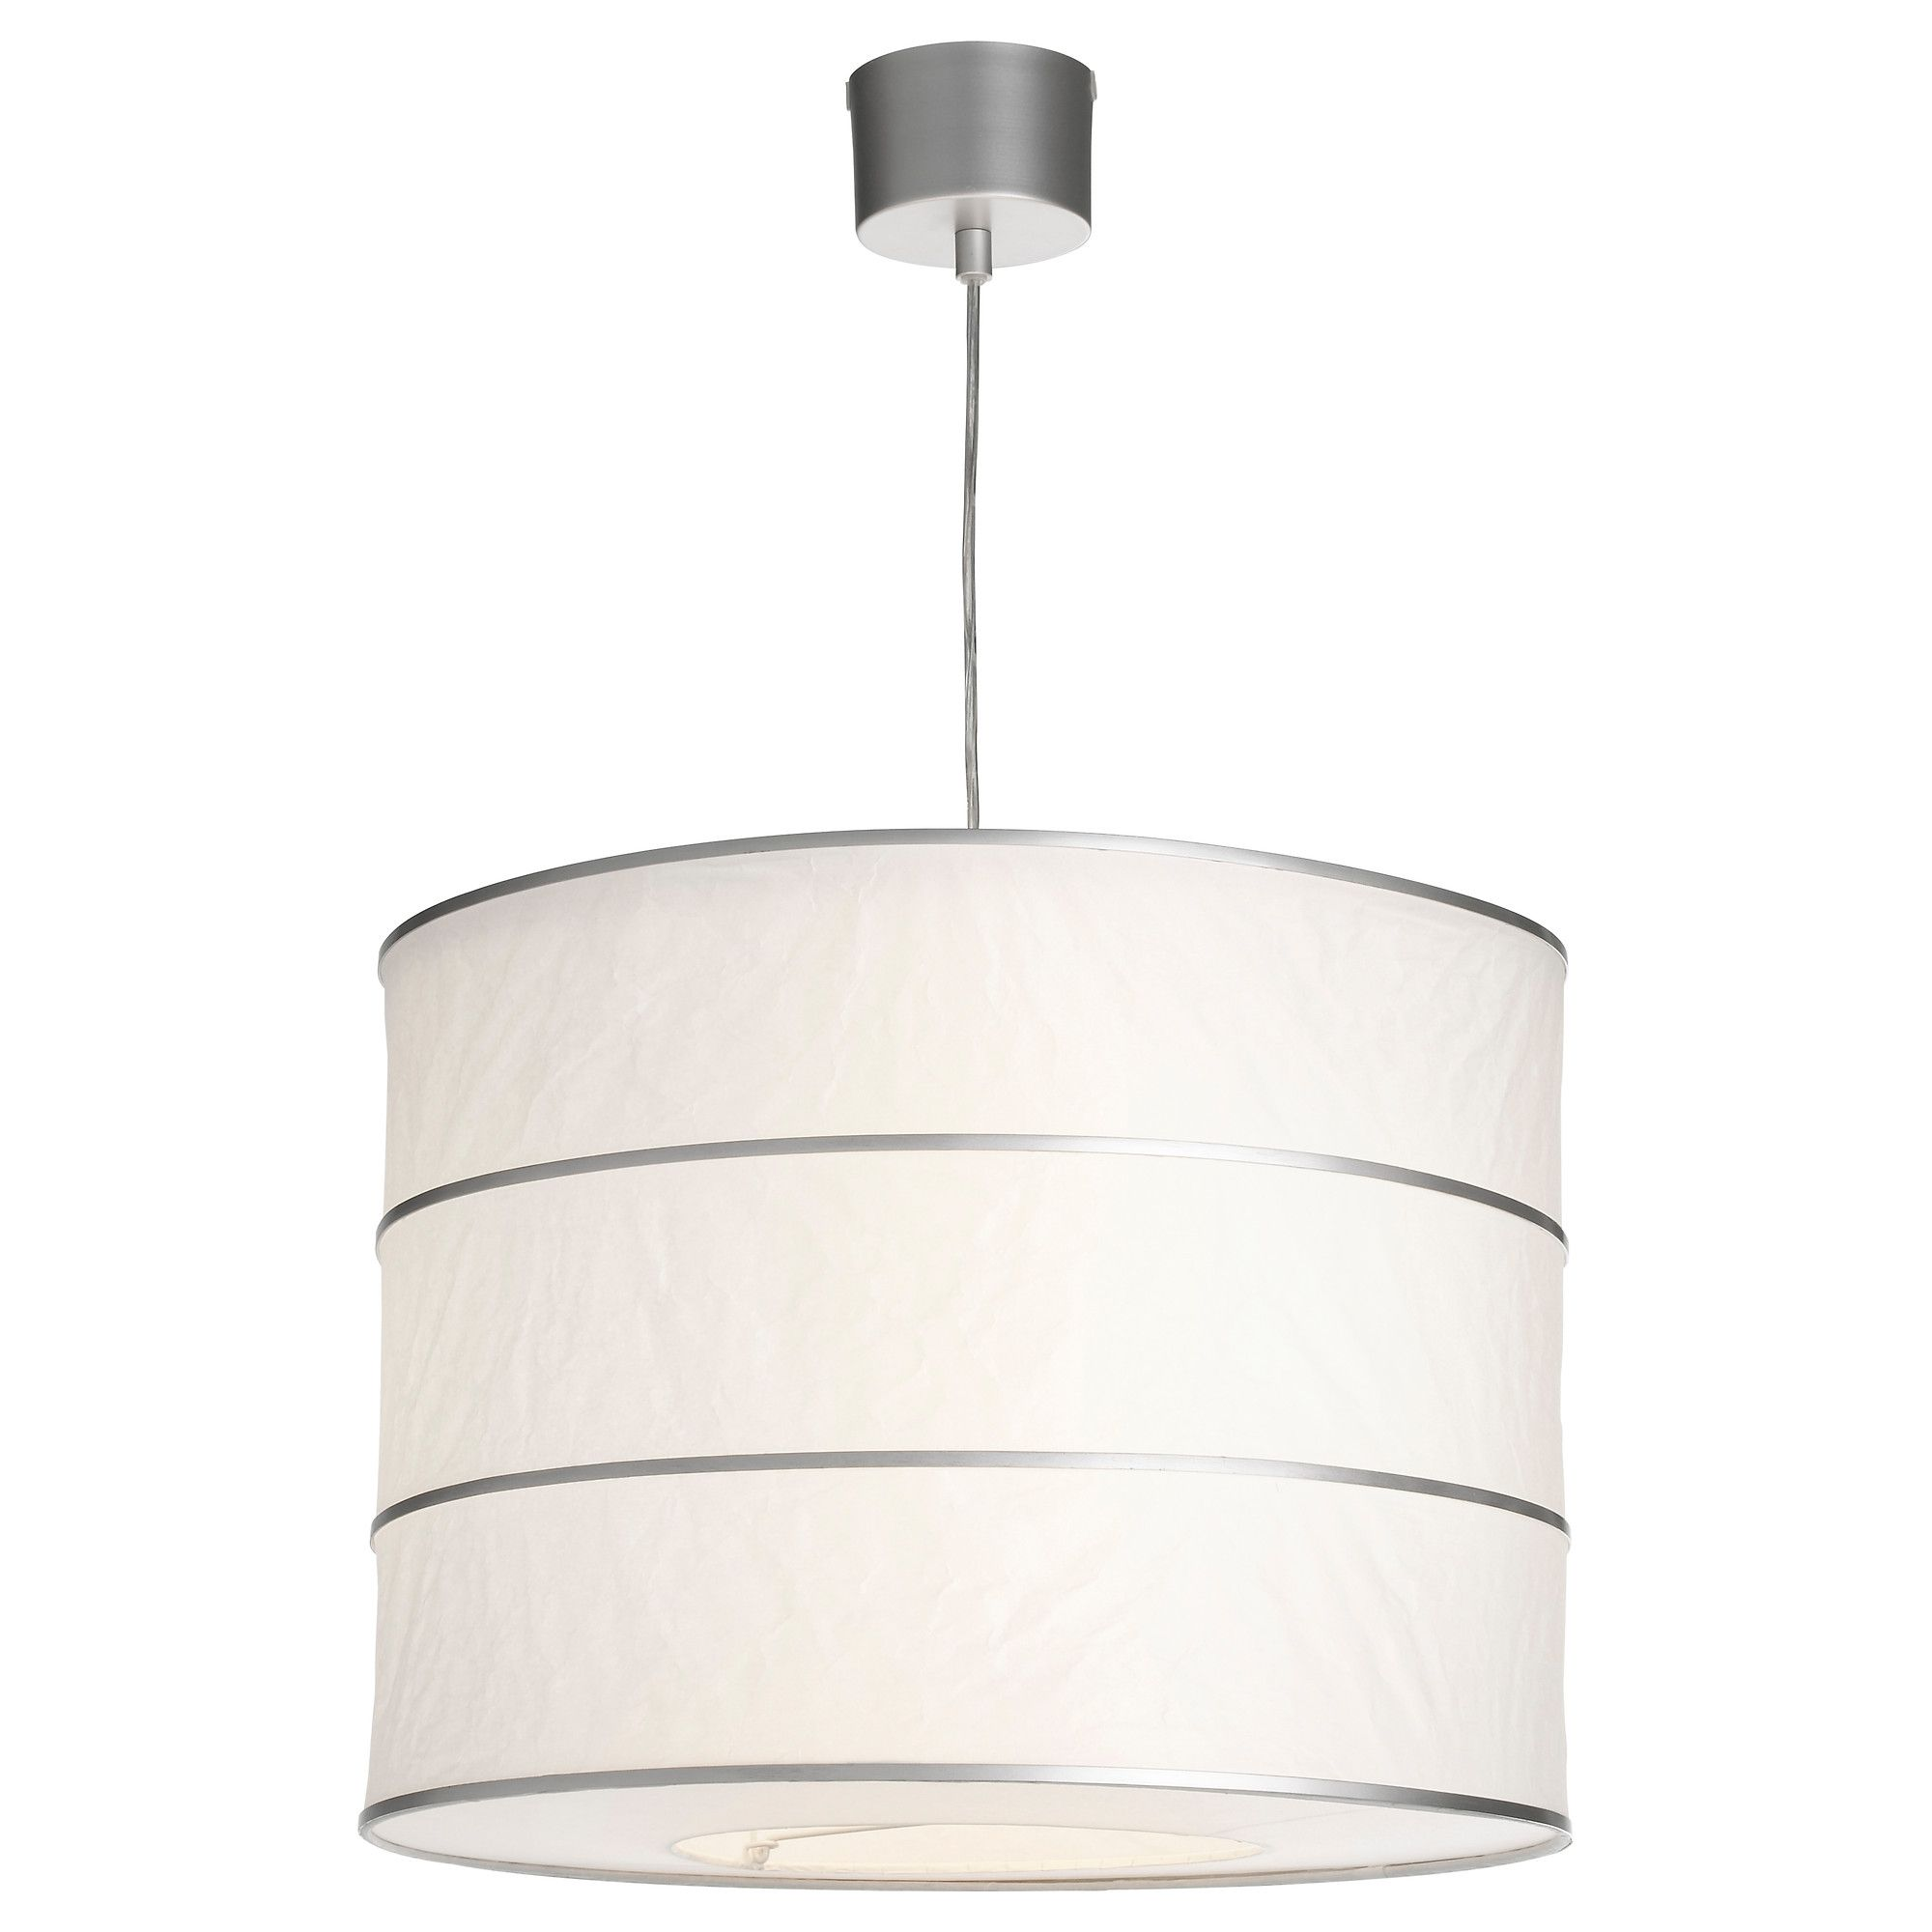 Ikea lighting chandeliers ikea stockholm chandelier gives ikea lighting chandeliers rutbo pendant lamp cylinder shaped white 3999 article number arubaitofo Images